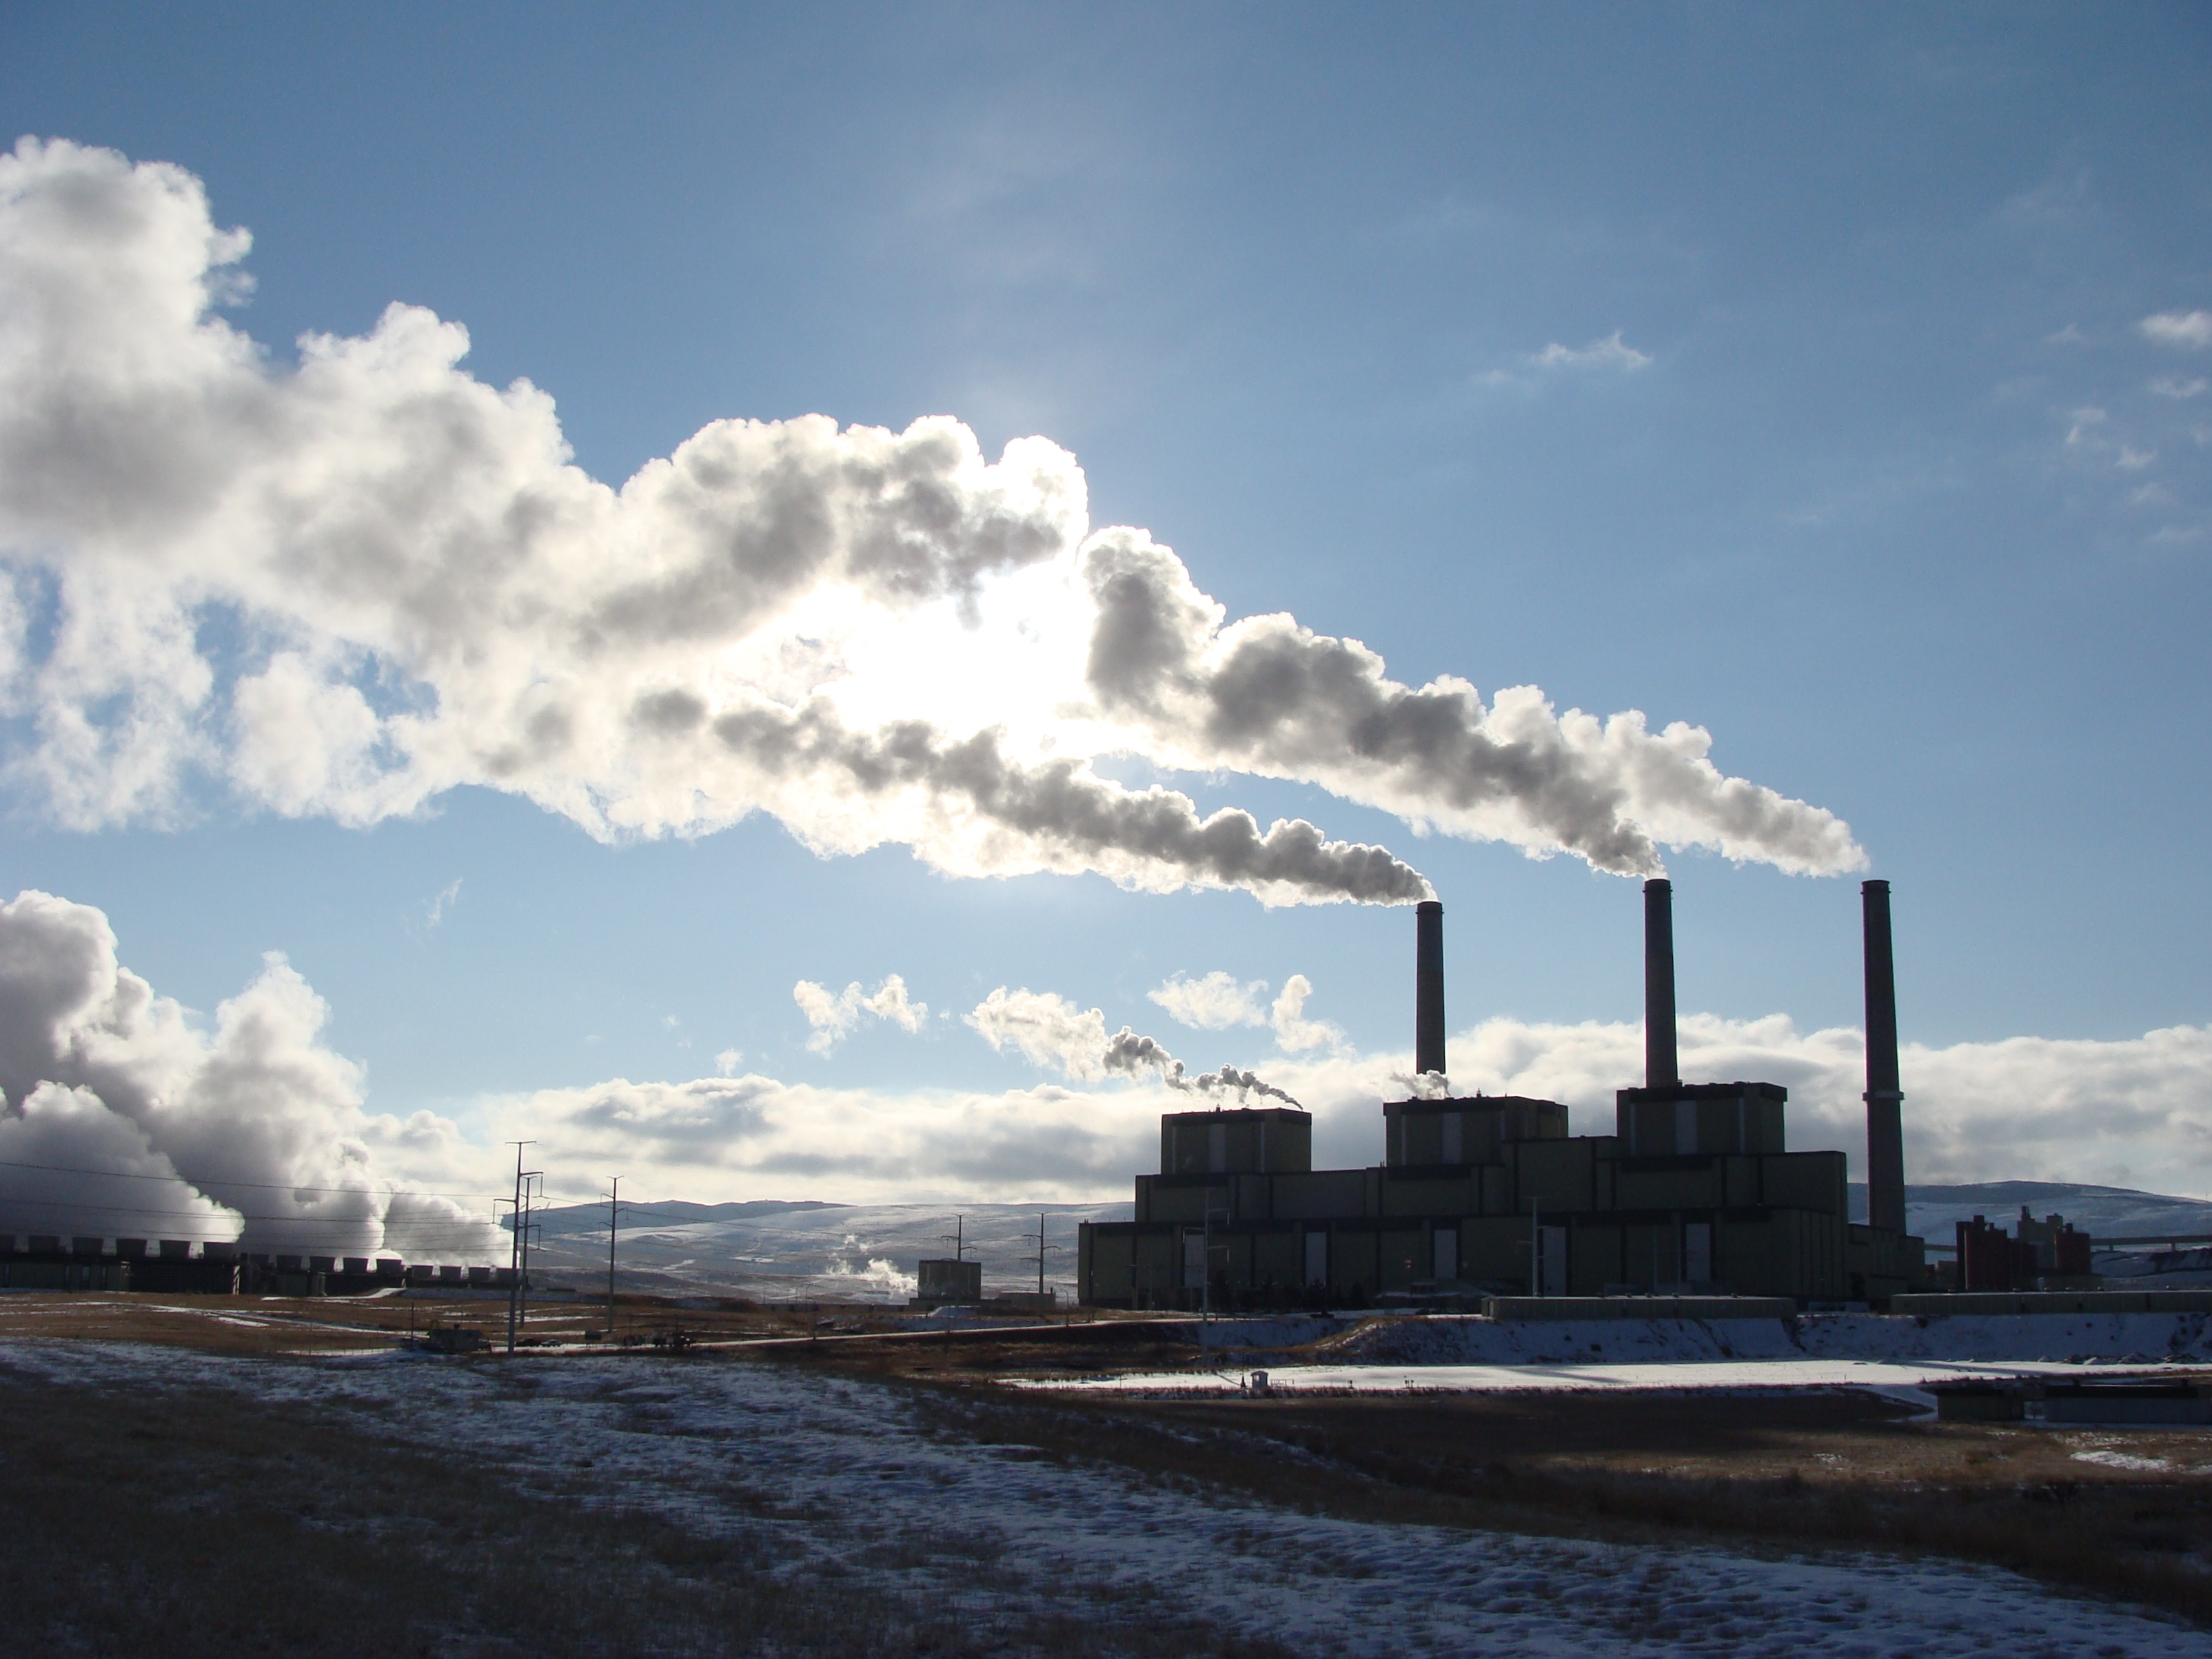 The Craig Station is a coal power plant run byTri-State Generation and Transmission.